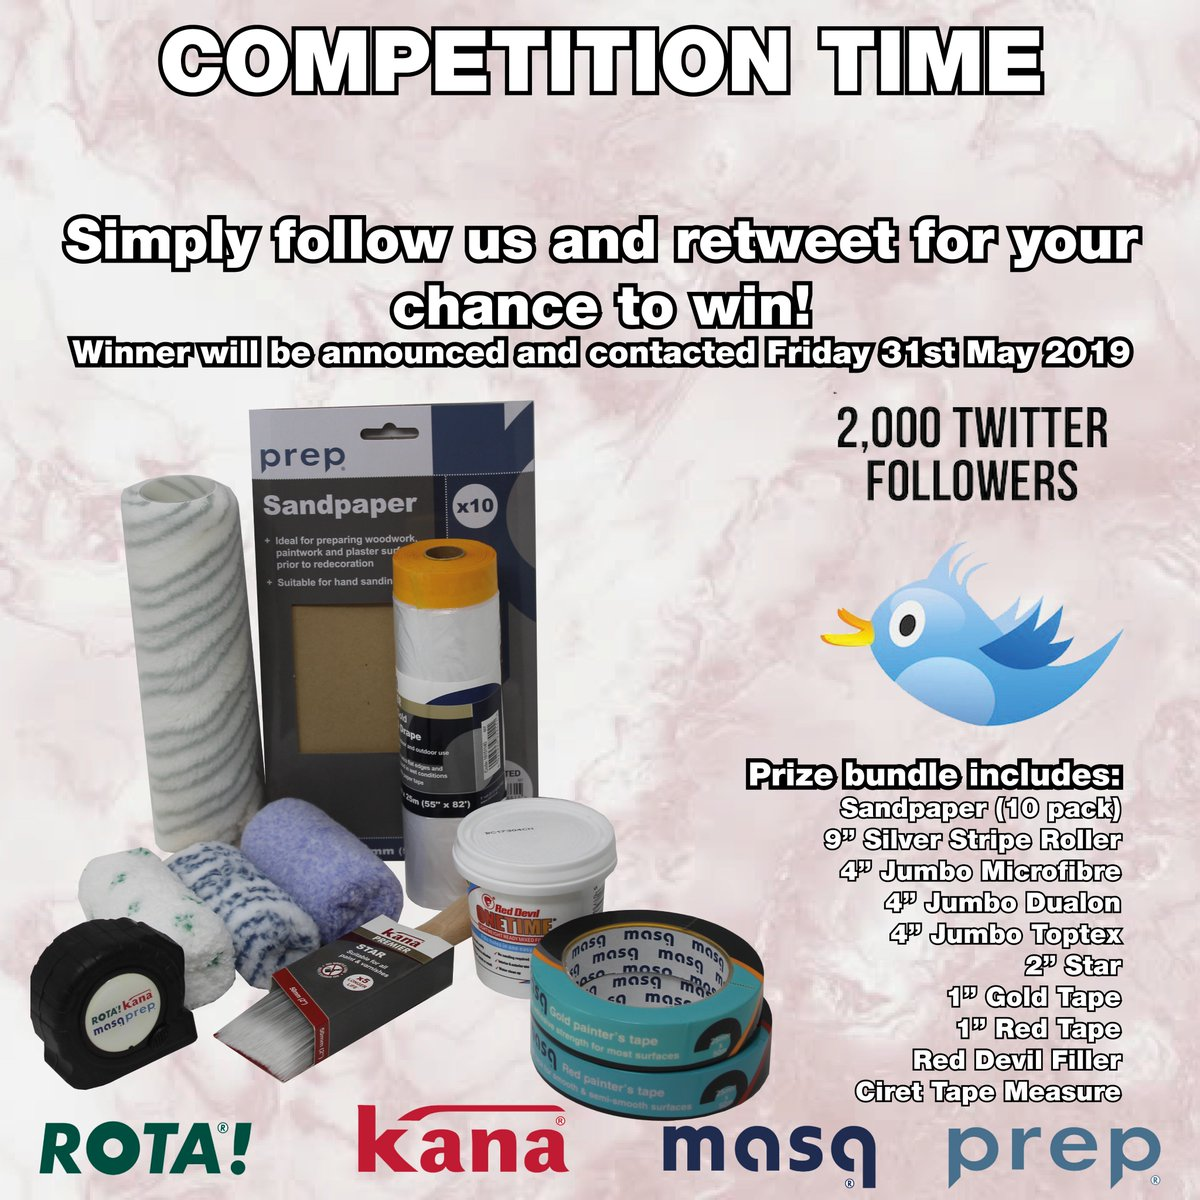 2000 Followers giveaway!   As a thank you for us reaching 2000 followers we are going a giveaway! Simply follow us and retweet for your chance to win! Winner will be announced and contacted Friday 31st May 2019   Good luck! #CompetitionTime <br>http://pic.twitter.com/vr3Rl97DNR